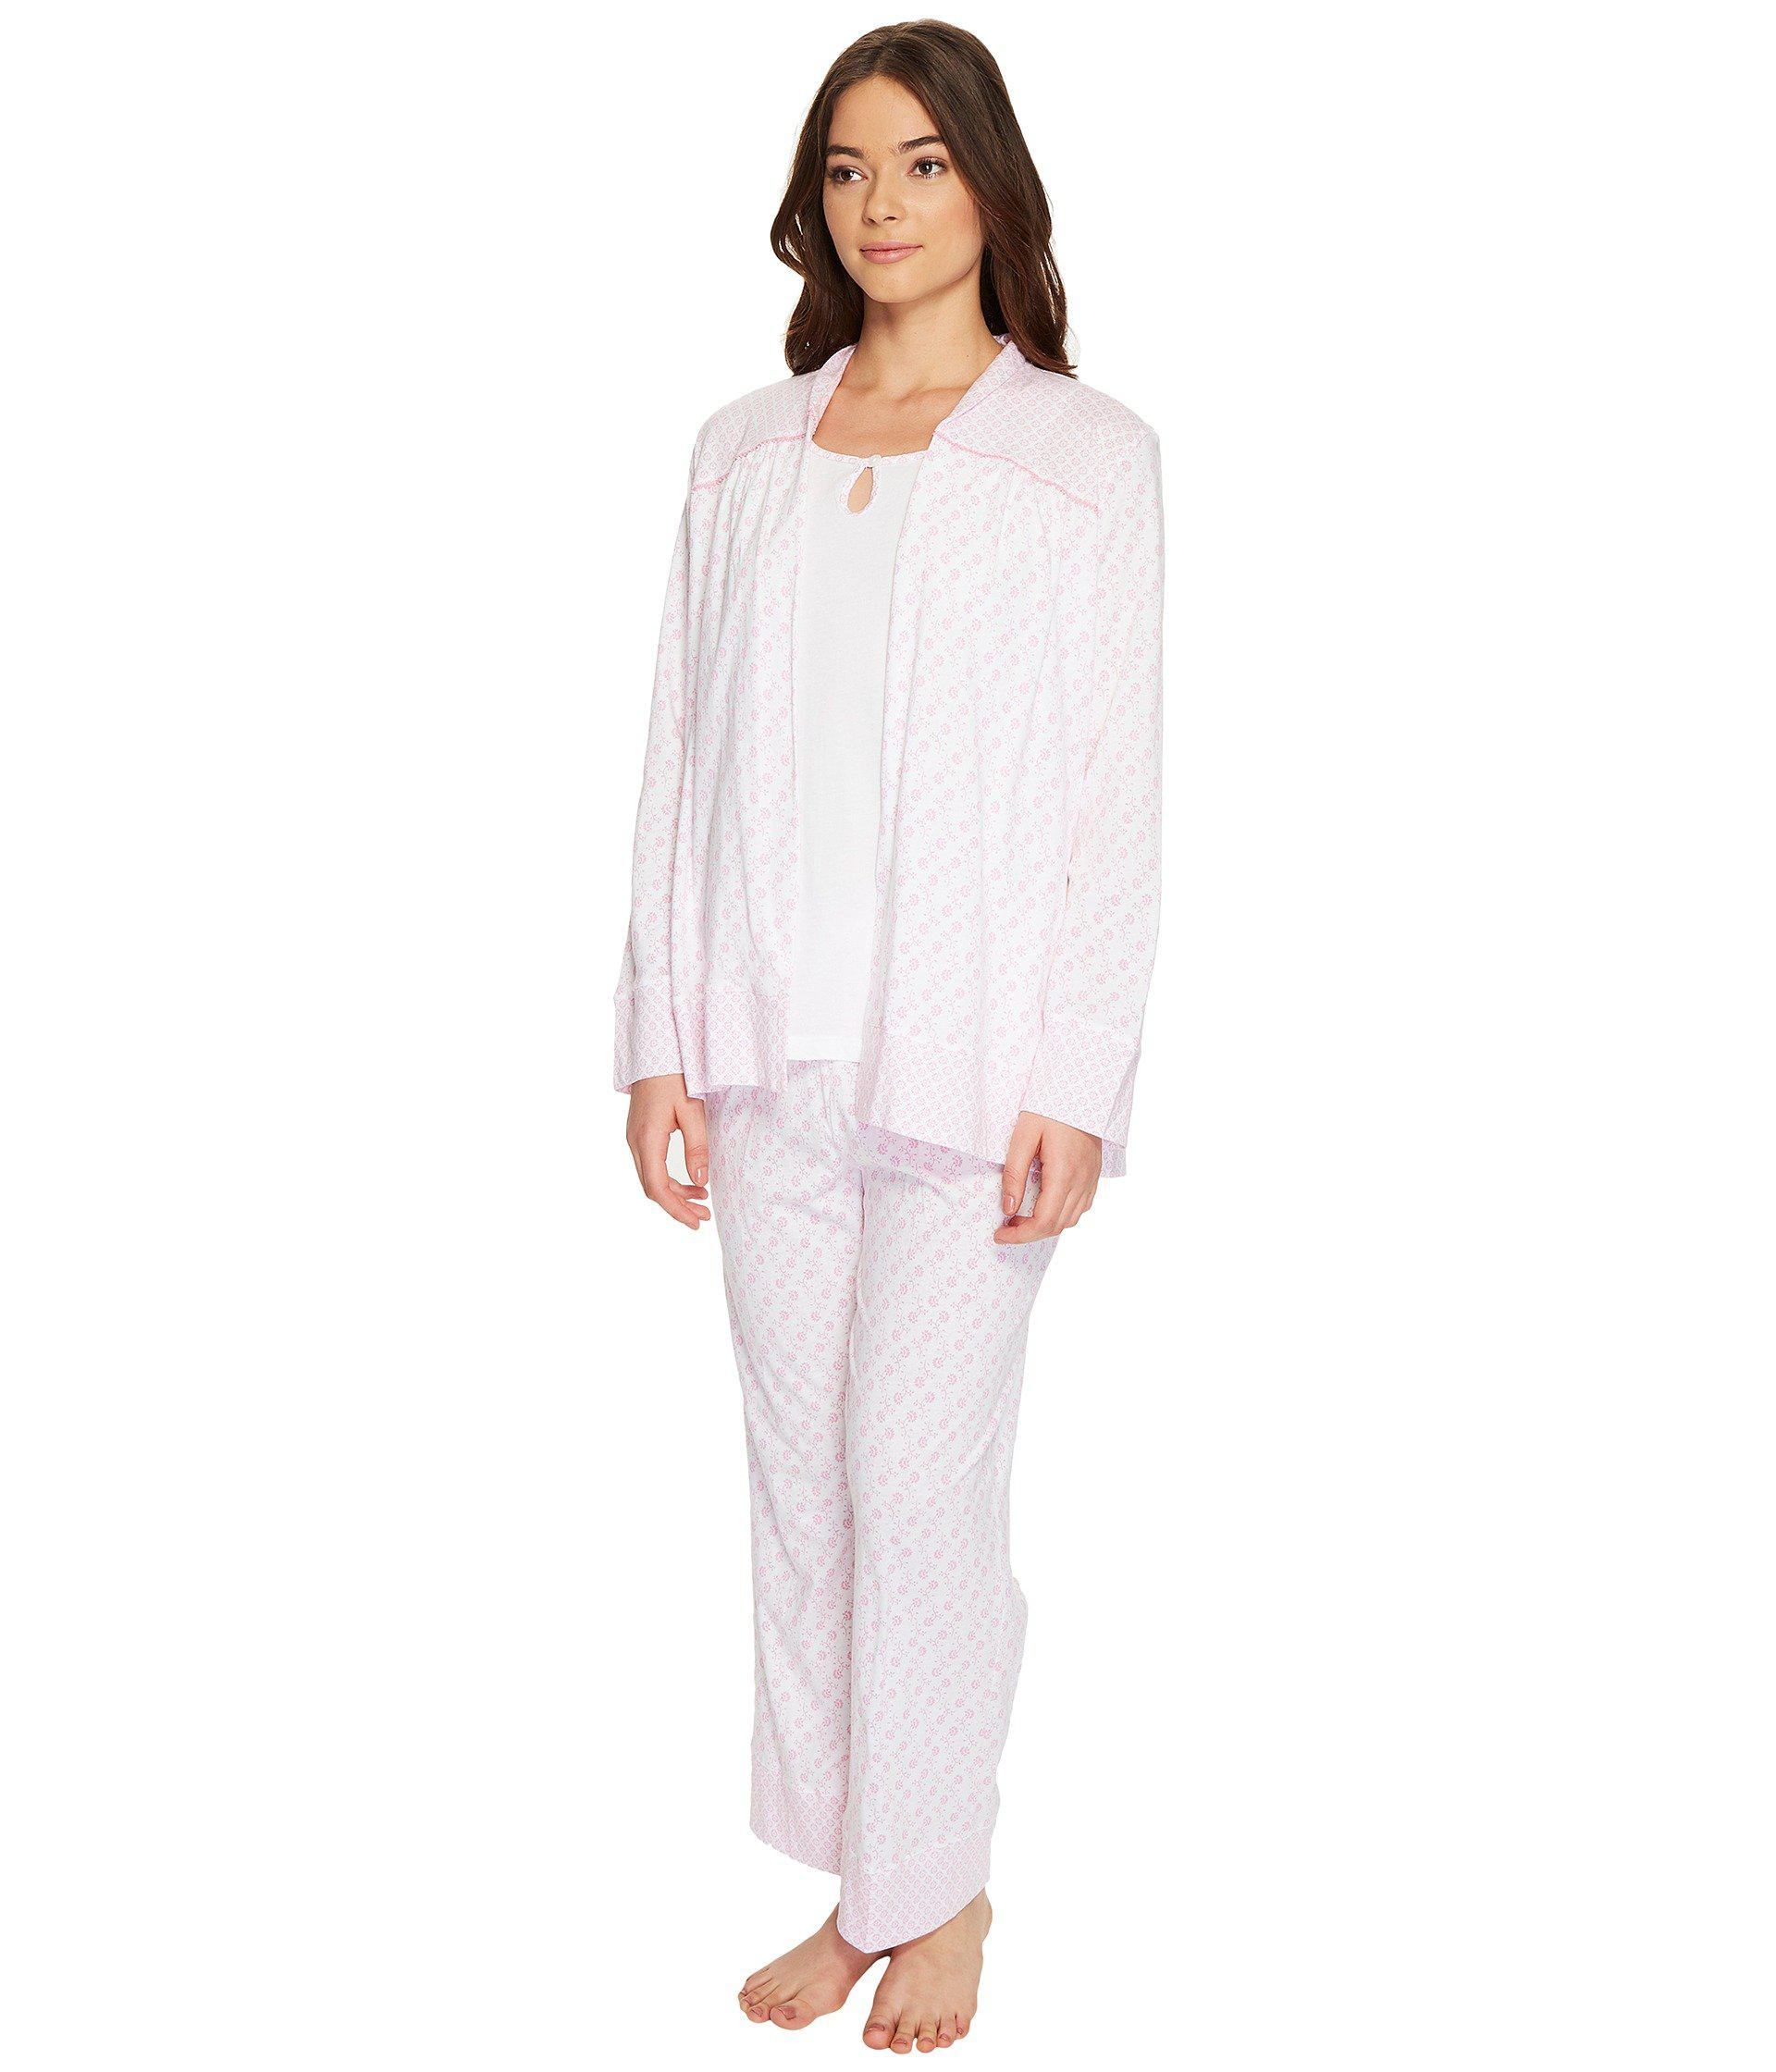 Lyst - Carole Hochman Three-piece Cotton Pj Set in White f965e79bc